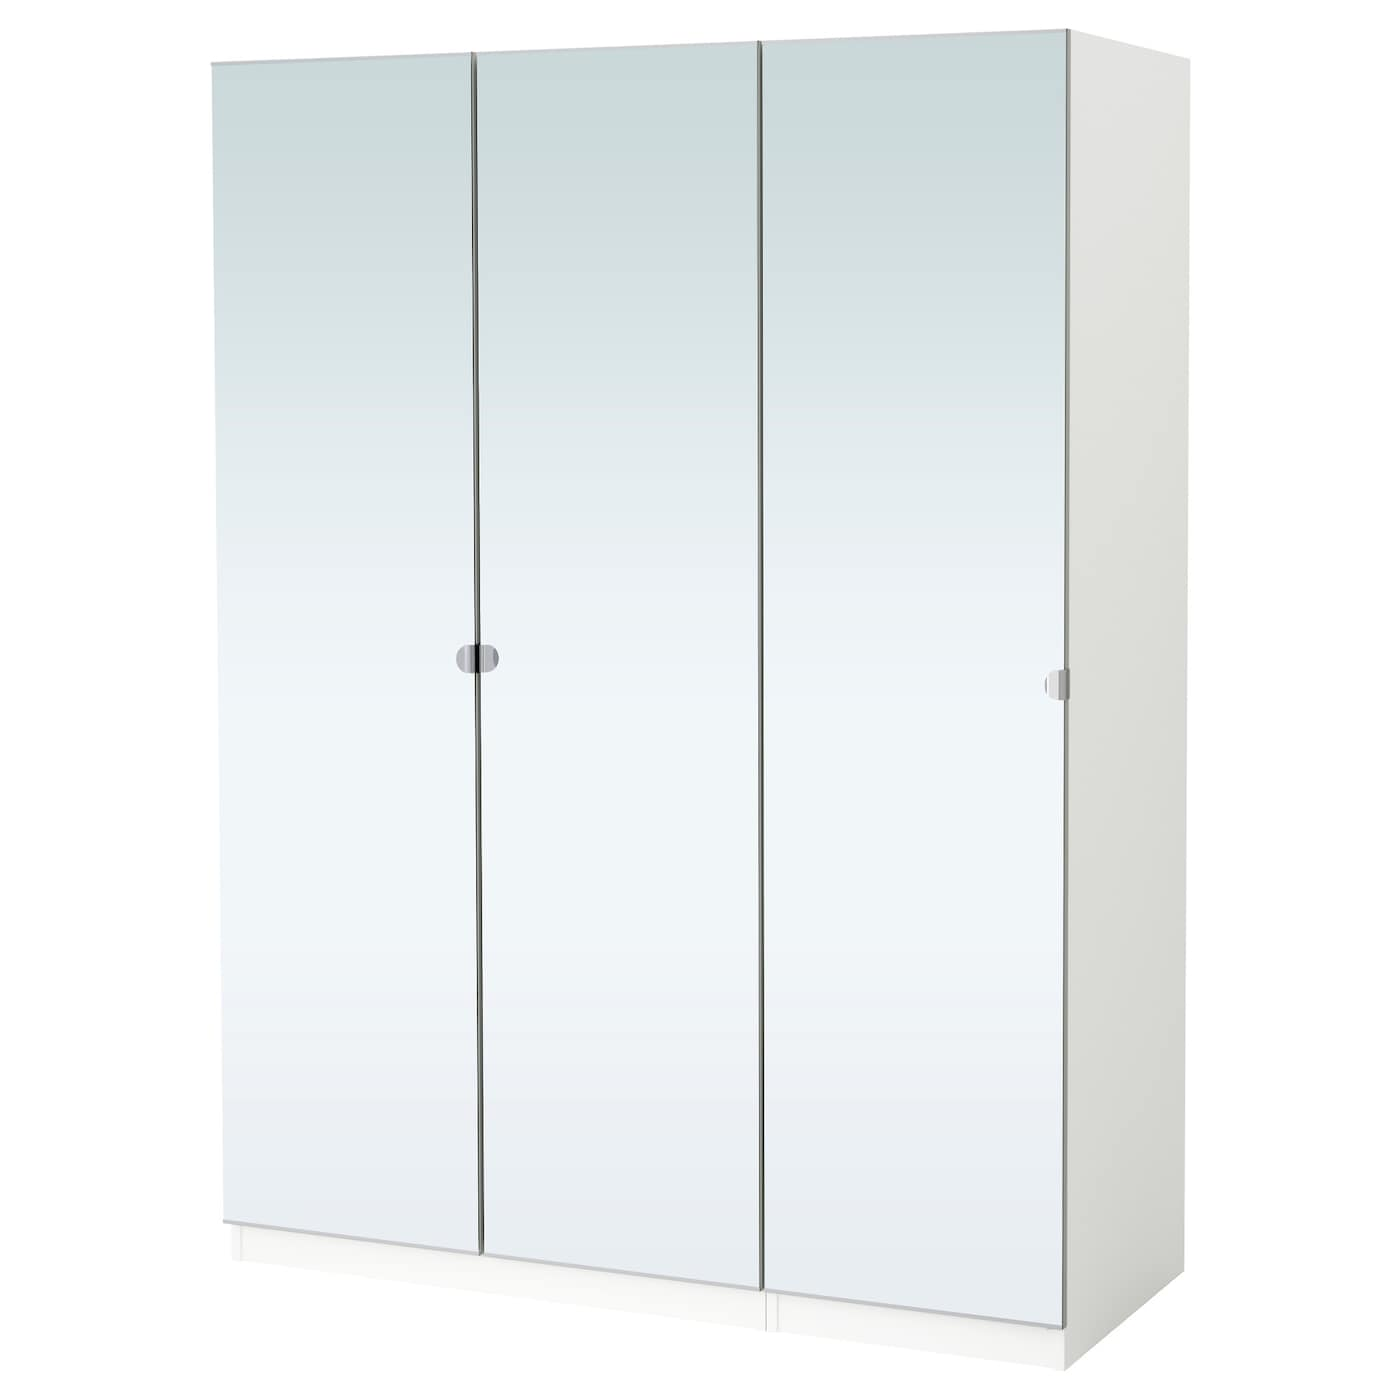 pax wardrobe white vikedal mirror glass 150 x 60 x 201 cm. Black Bedroom Furniture Sets. Home Design Ideas